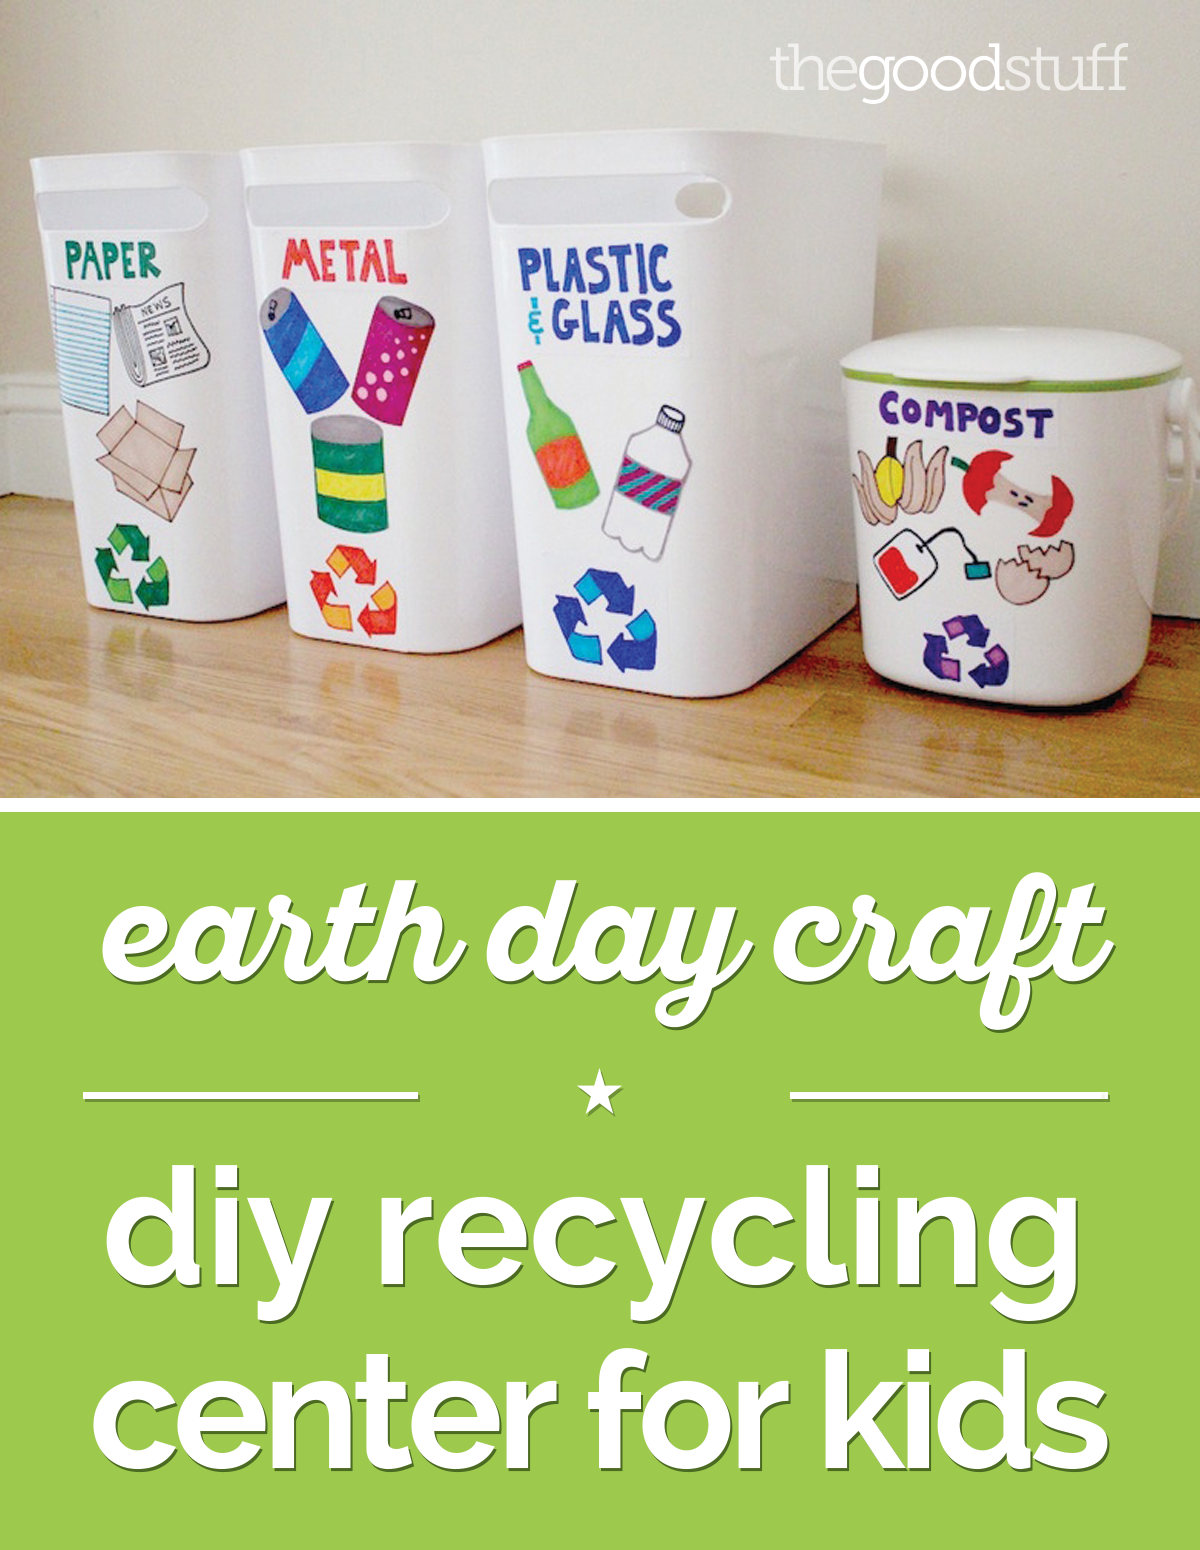 earth day craft diy recycling center for kids recycling center